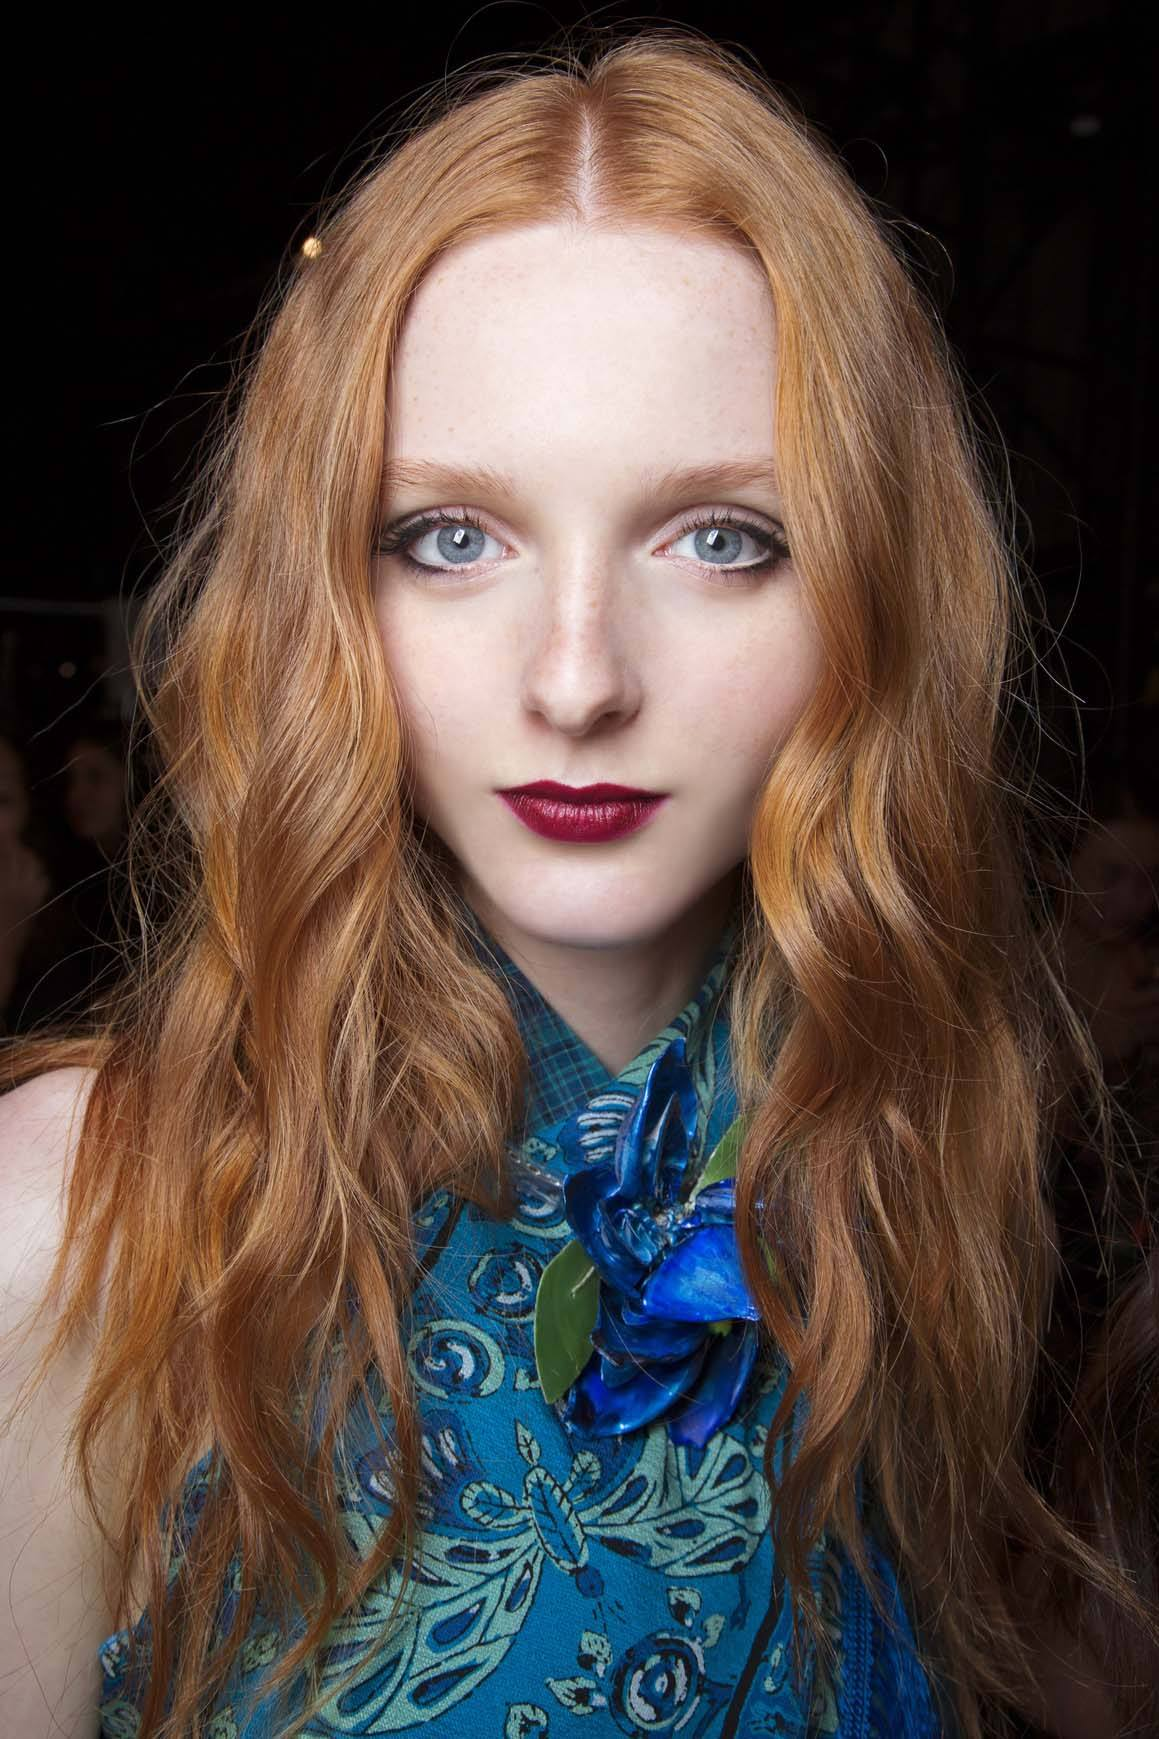 fair skinned model with long wavy ginger copper red hair wearing blue top and berry lipstick